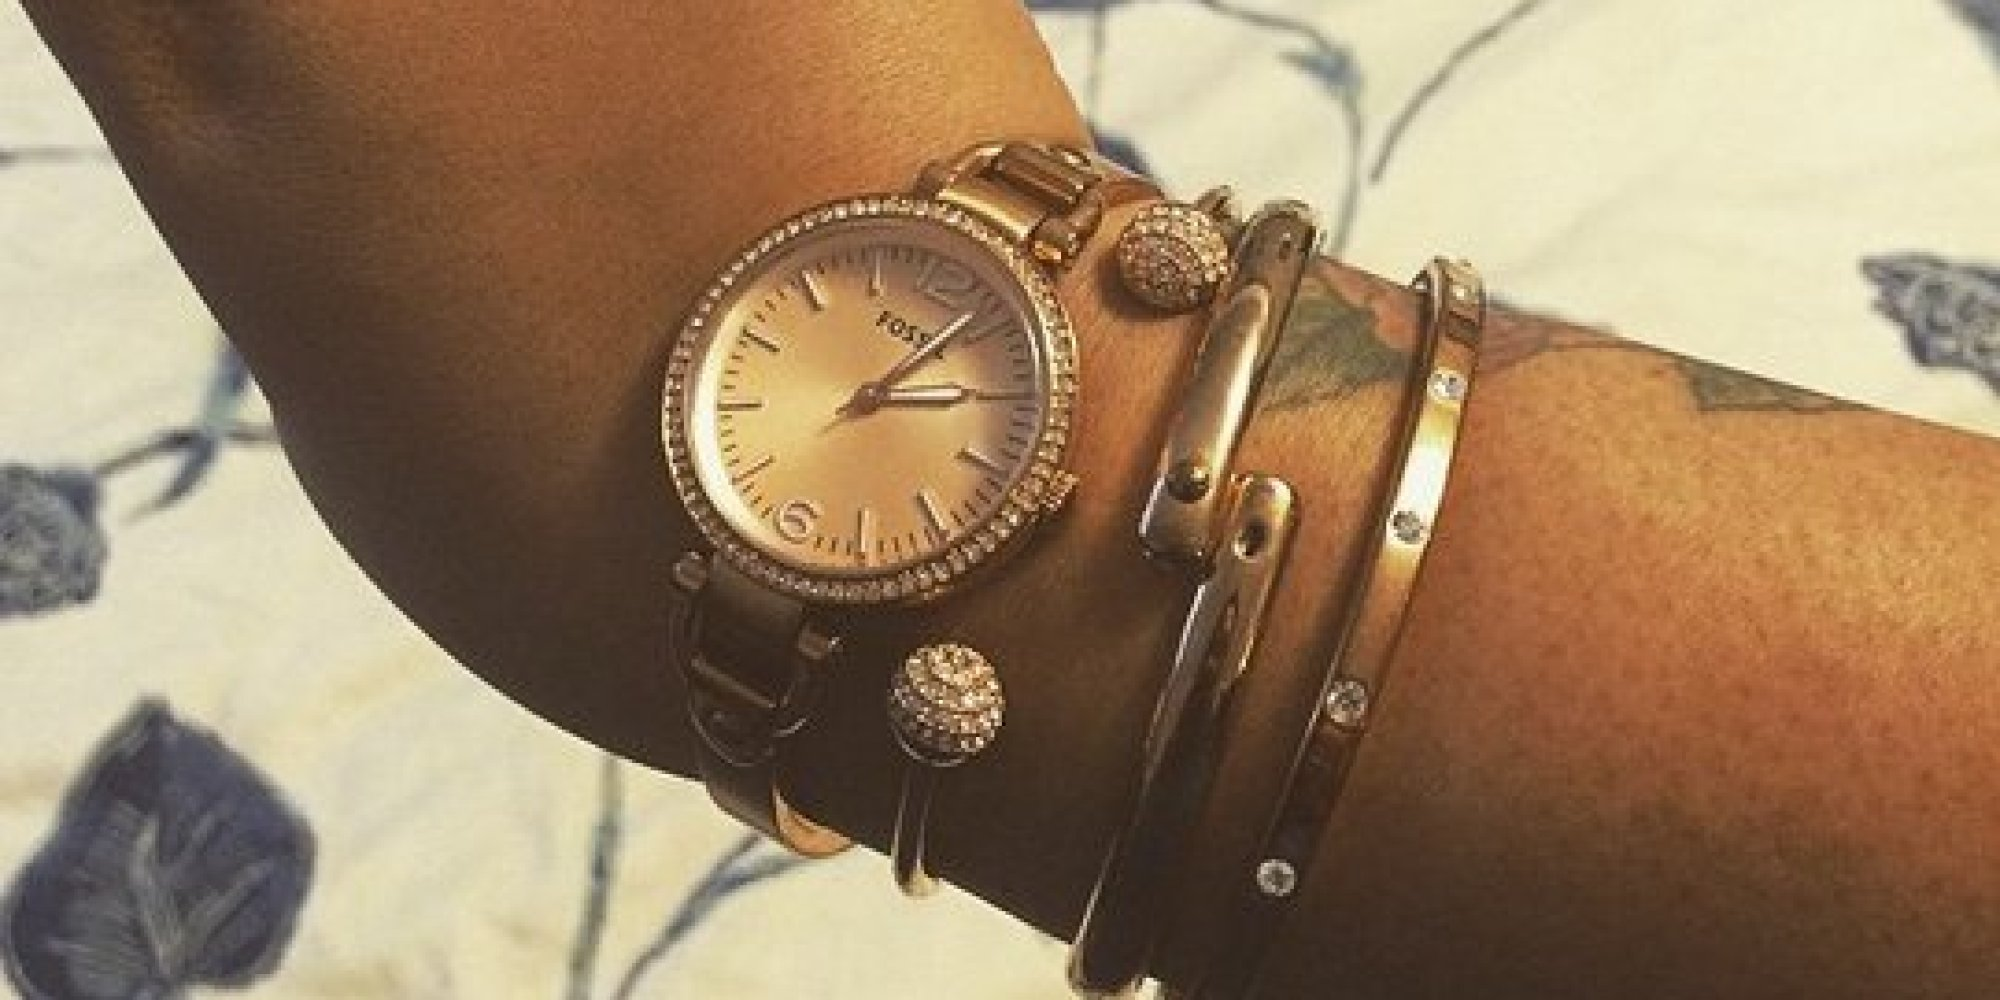 Proof That Rose Gold Jewelry Looks Great With Almost Every Skin Tone